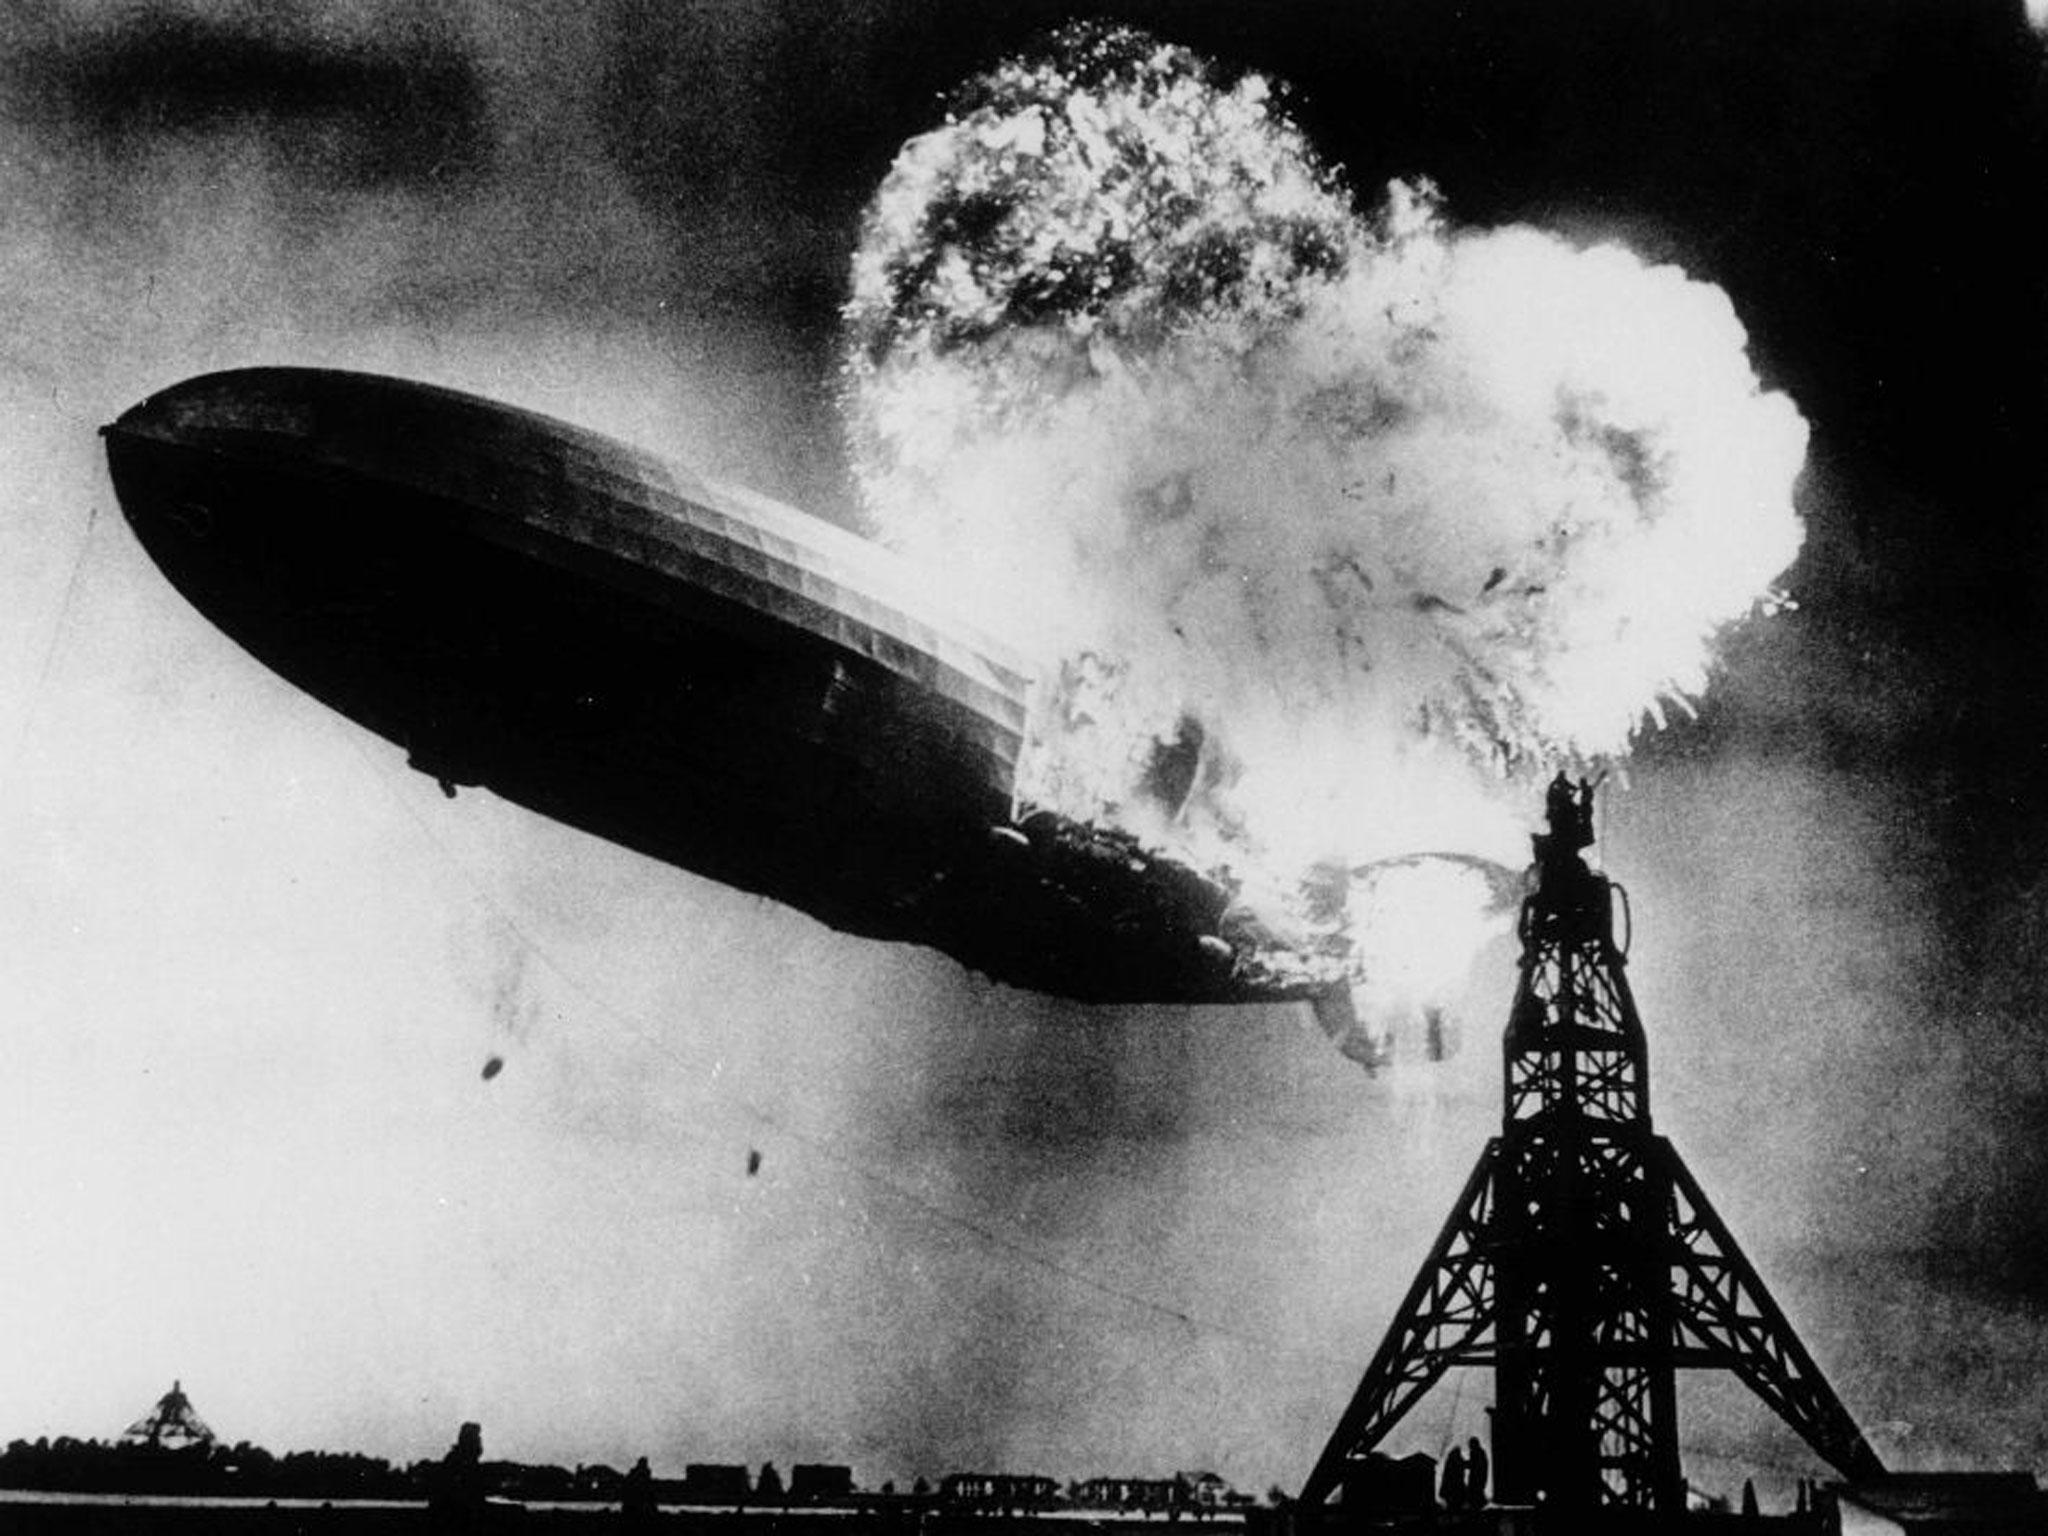 Hindenburg Mystery Solved After More Than 75 Years